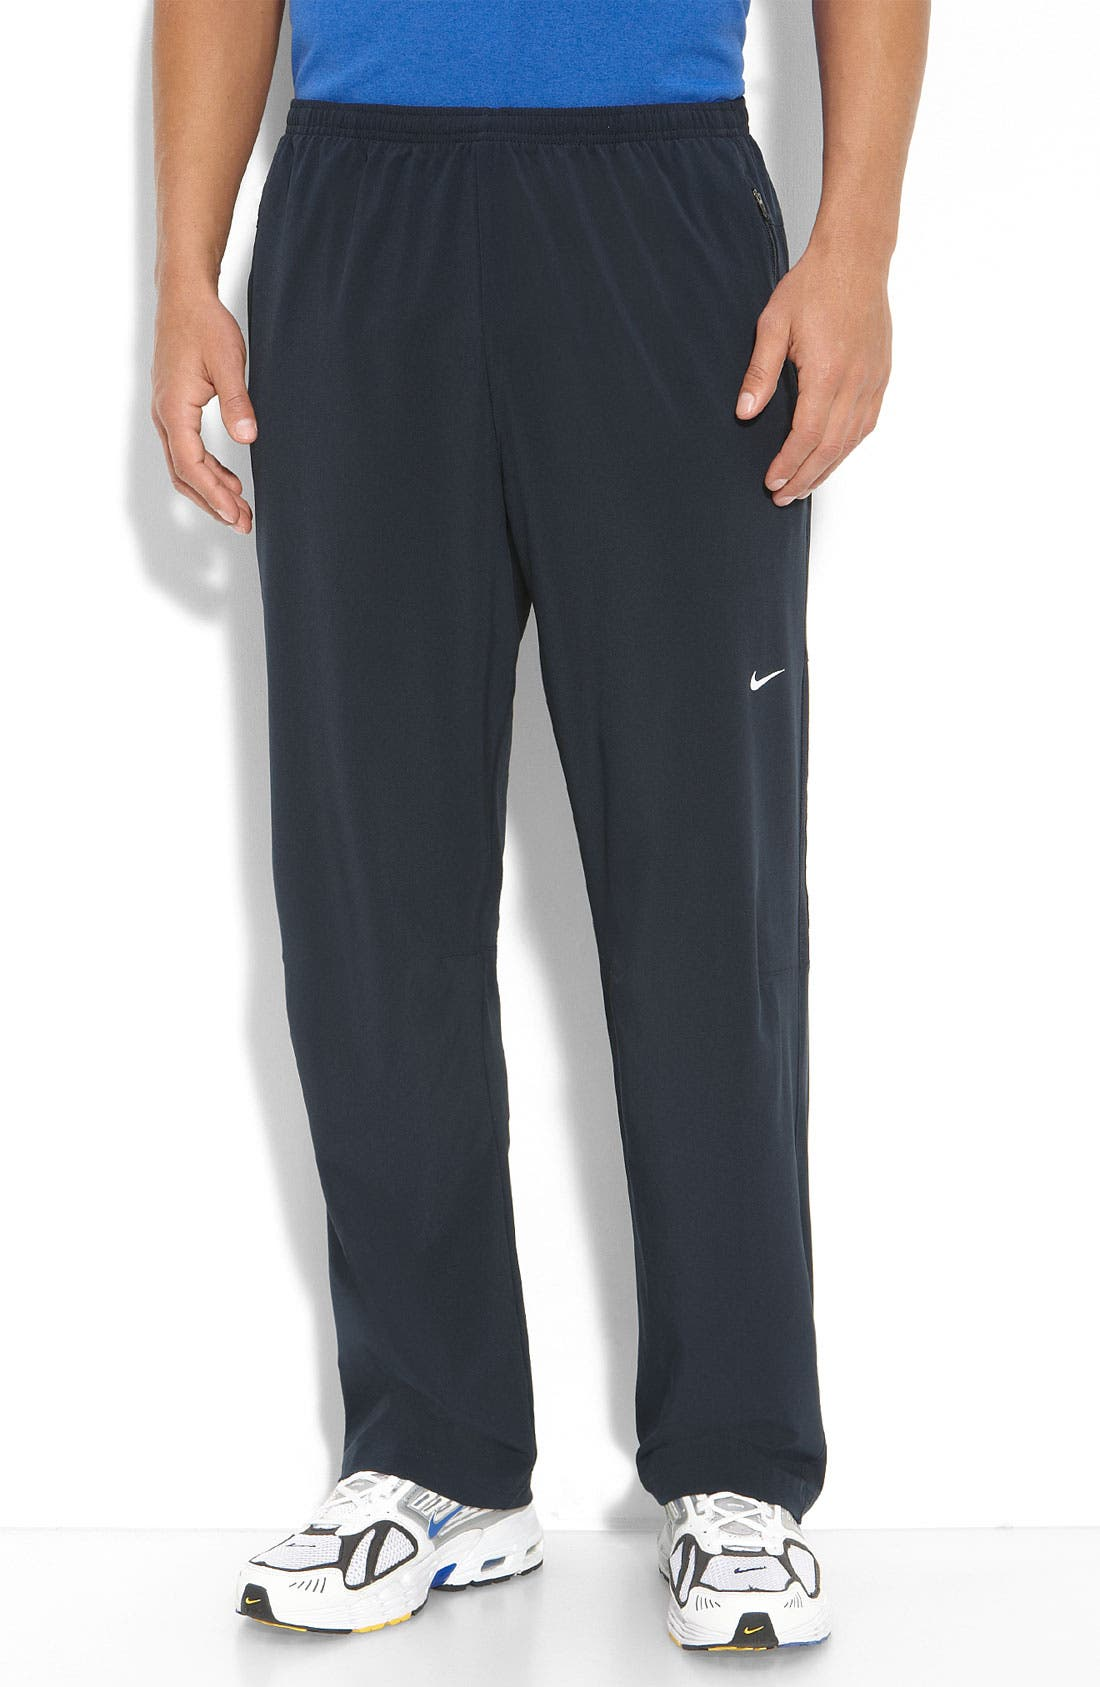 Alternate Image 1 Selected - Nike Dri-FIT Stretch Woven Pants